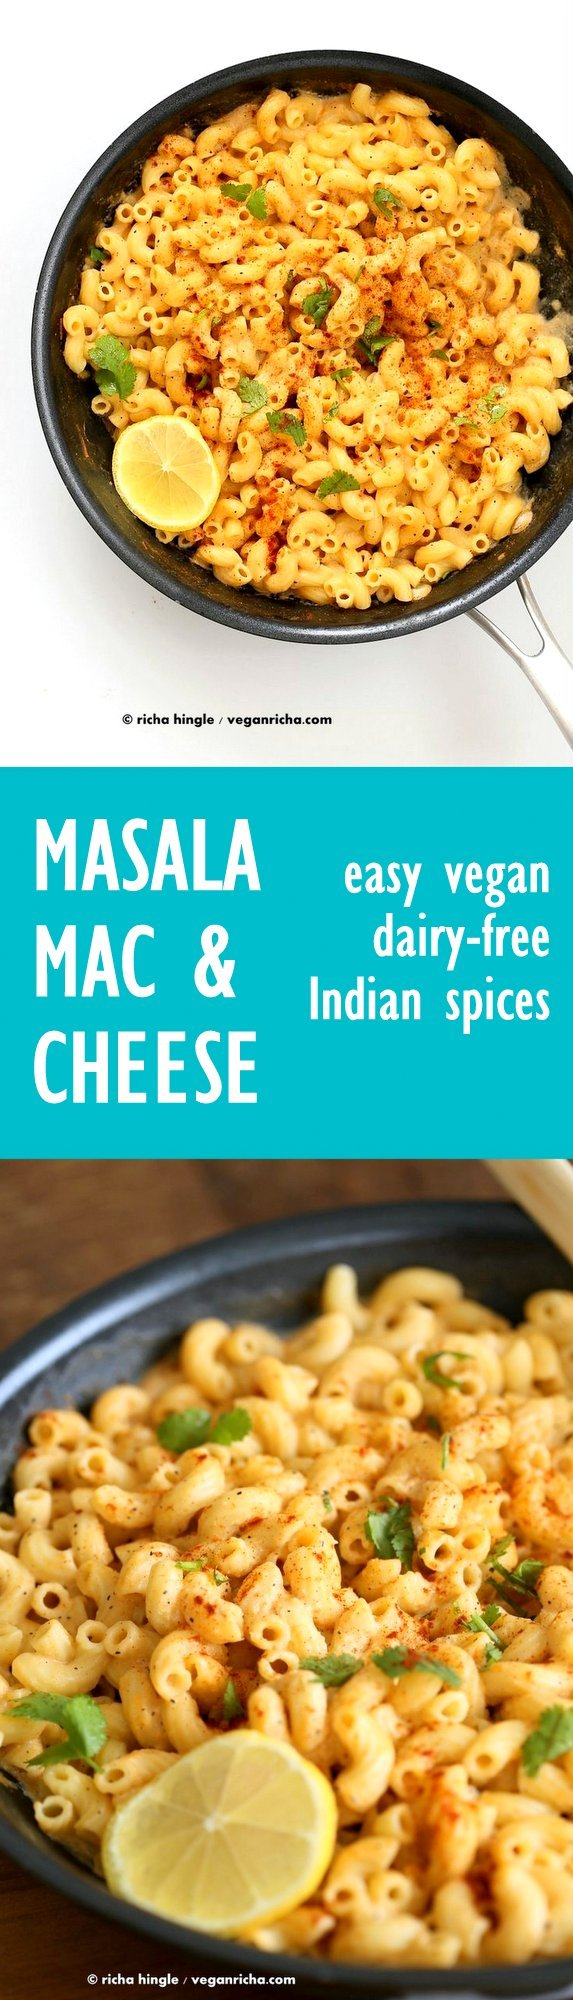 Masala Mac and Cheese with Indian Spices Vegan Recipe - Vegan Richa